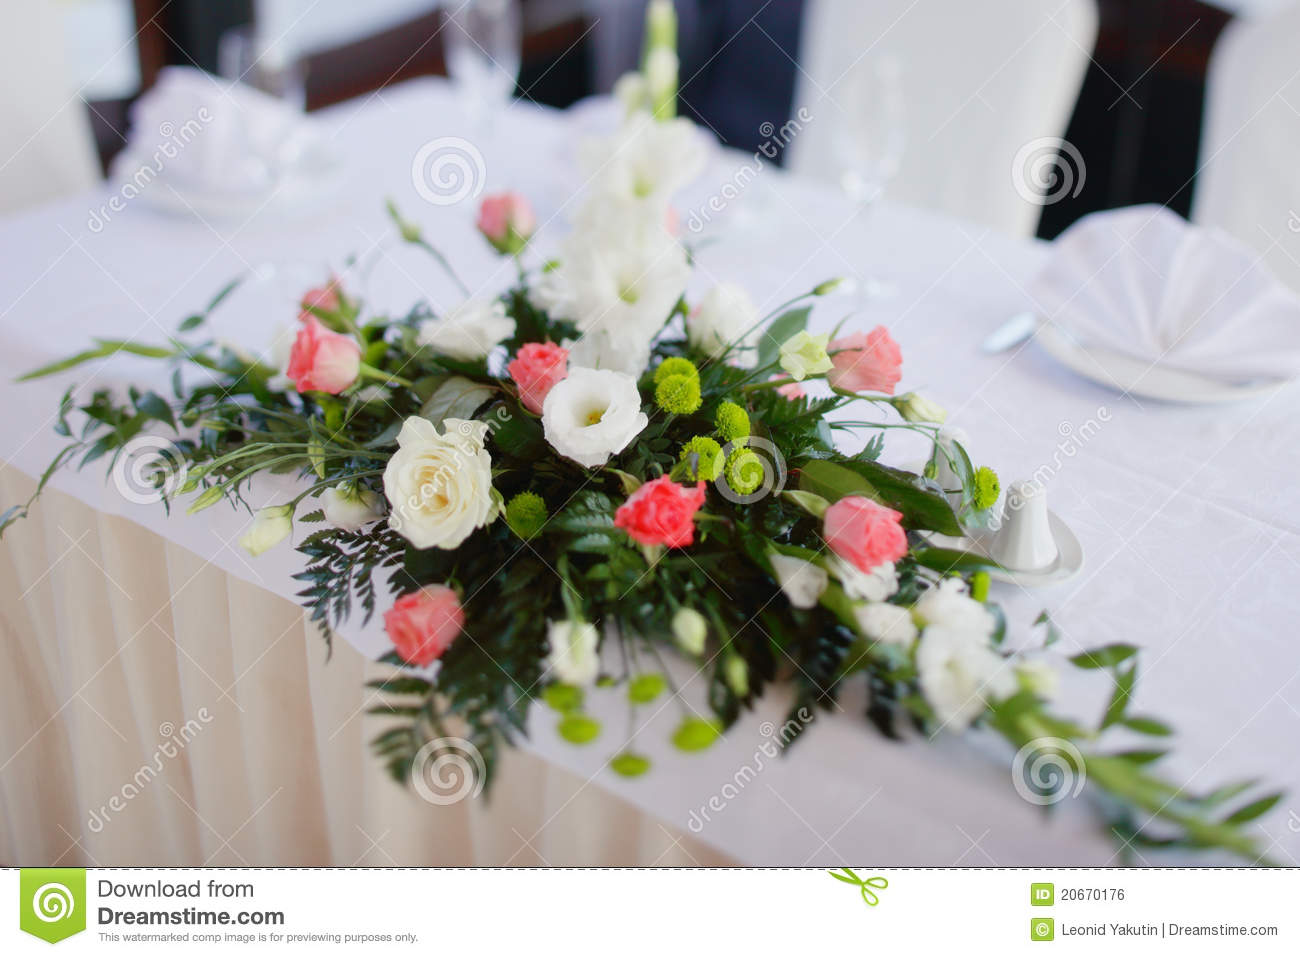 bouquet de mariage sur une table photo stock - image du café